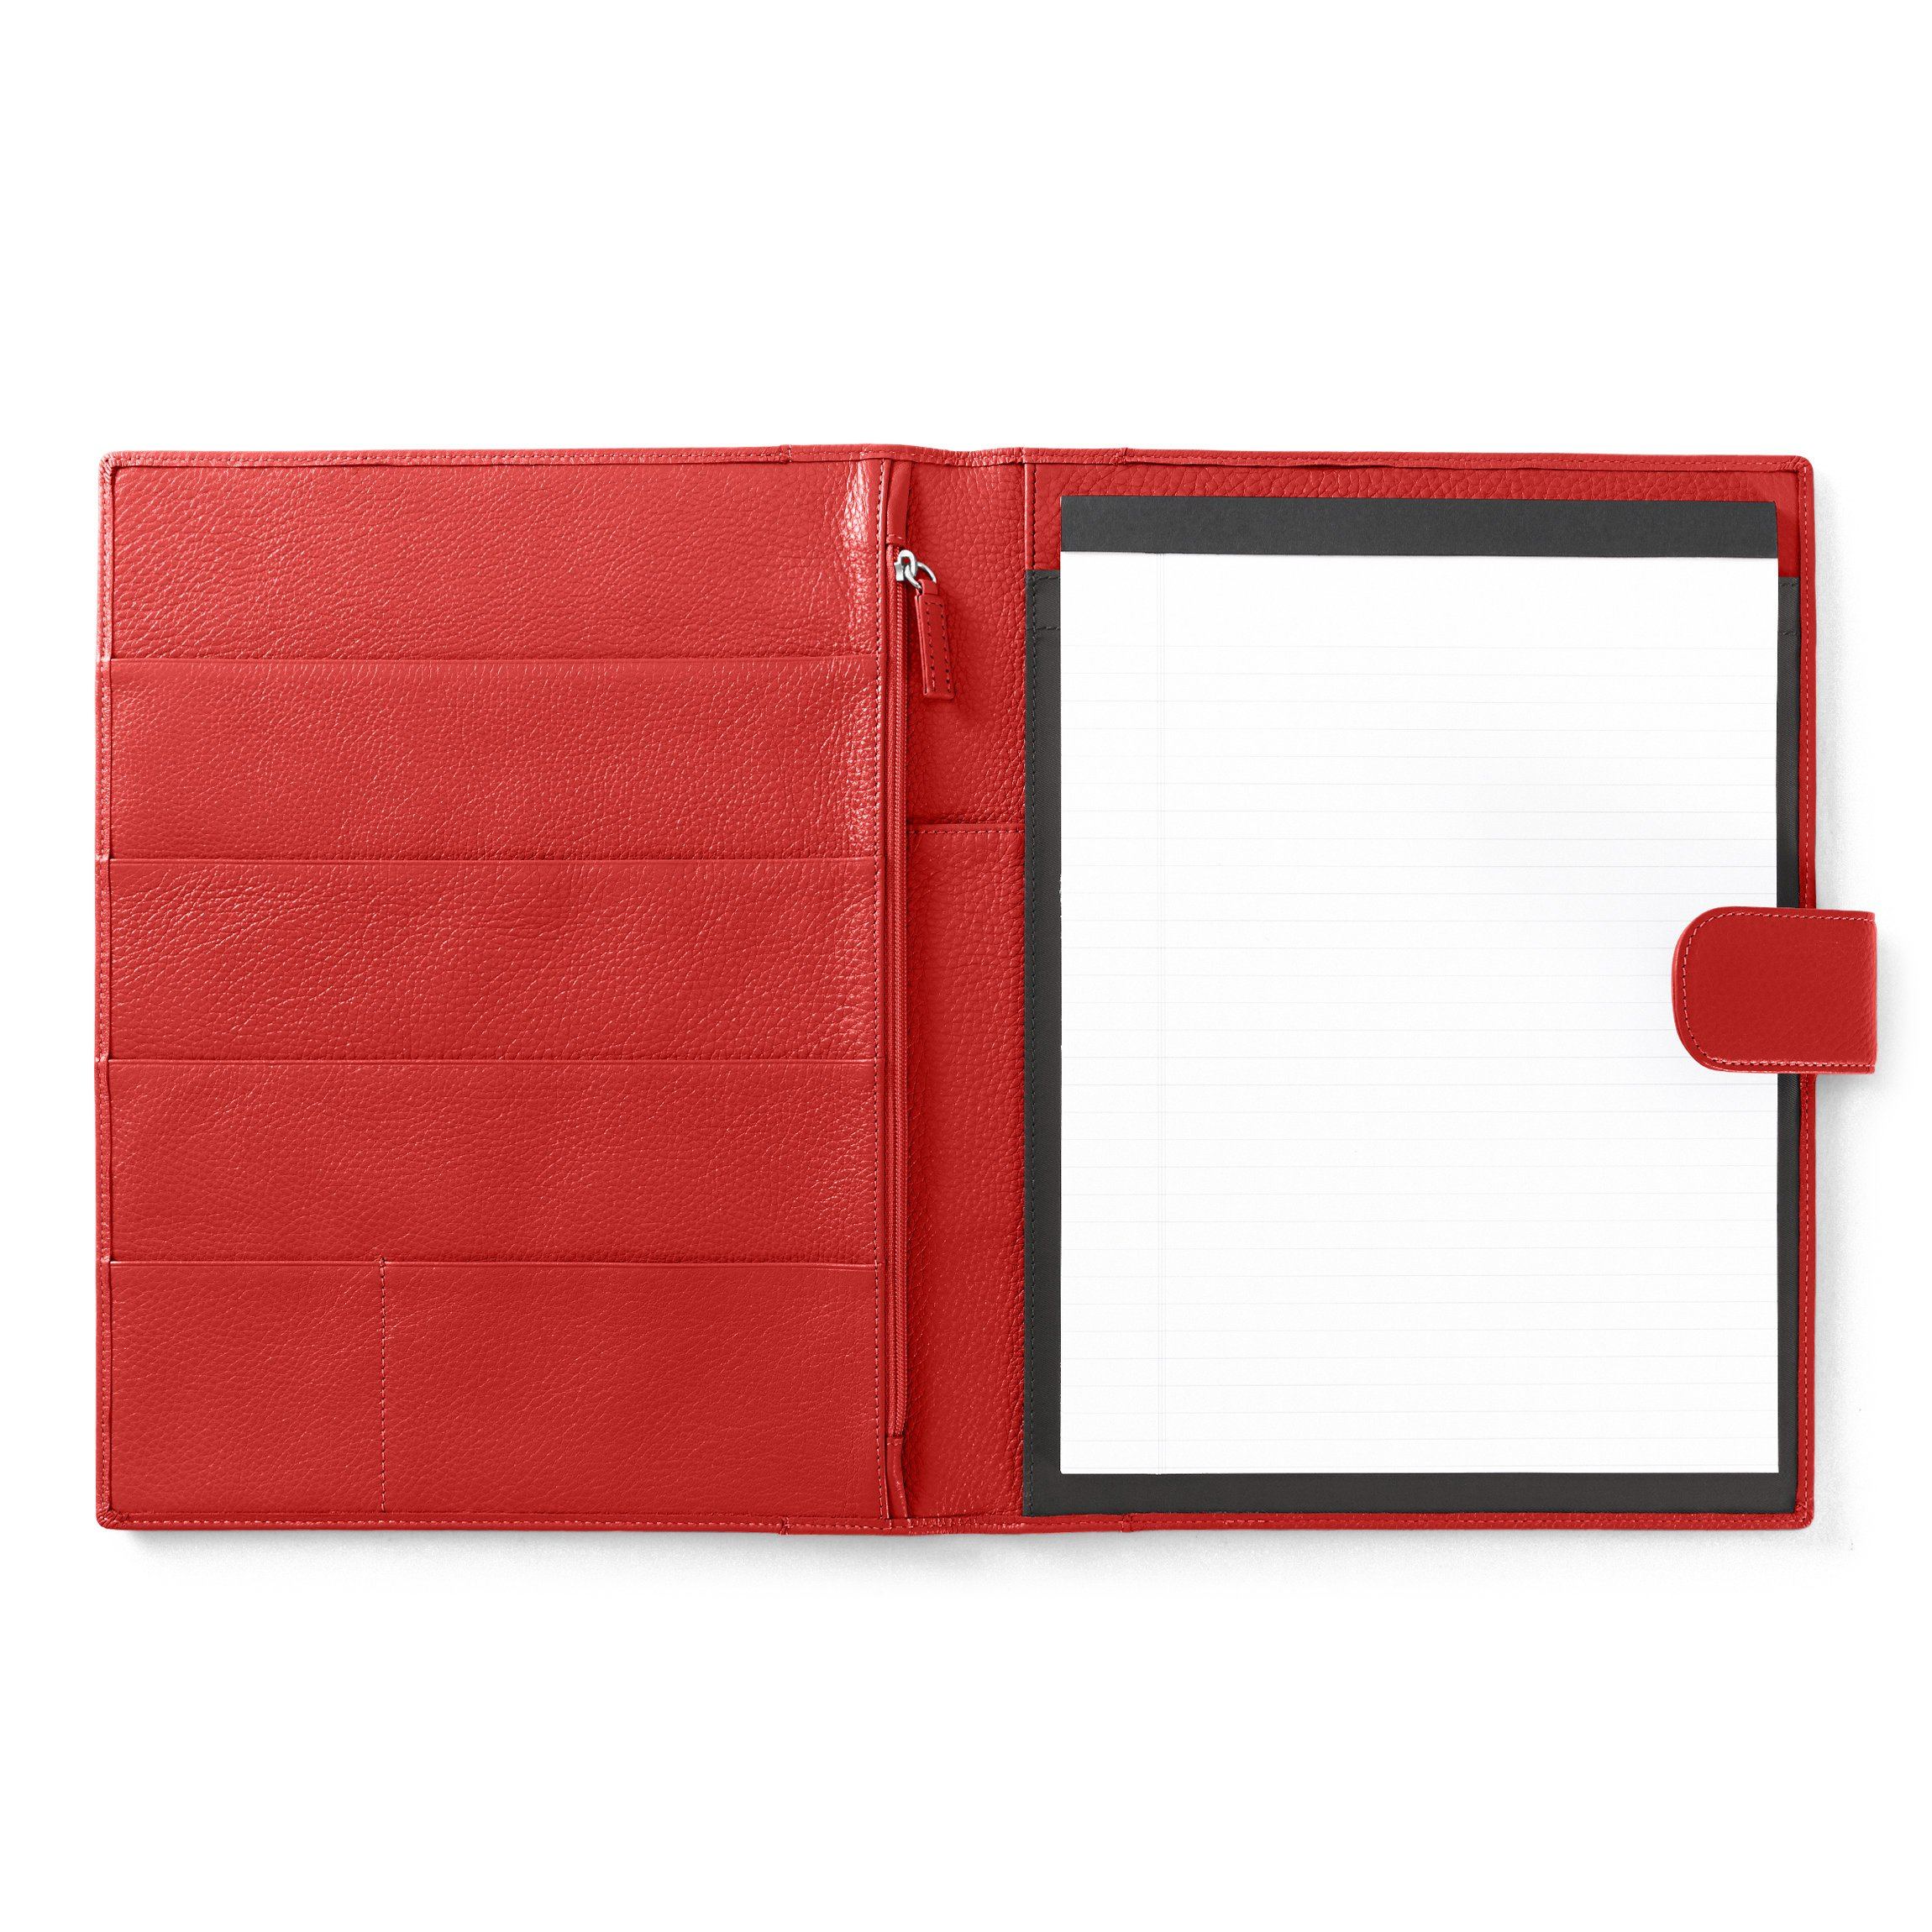 Leatherology Organizer Portfolio with Tablet Pocket & Magnetic Closure - Full Grain Leather Leather - Scarlet (red)